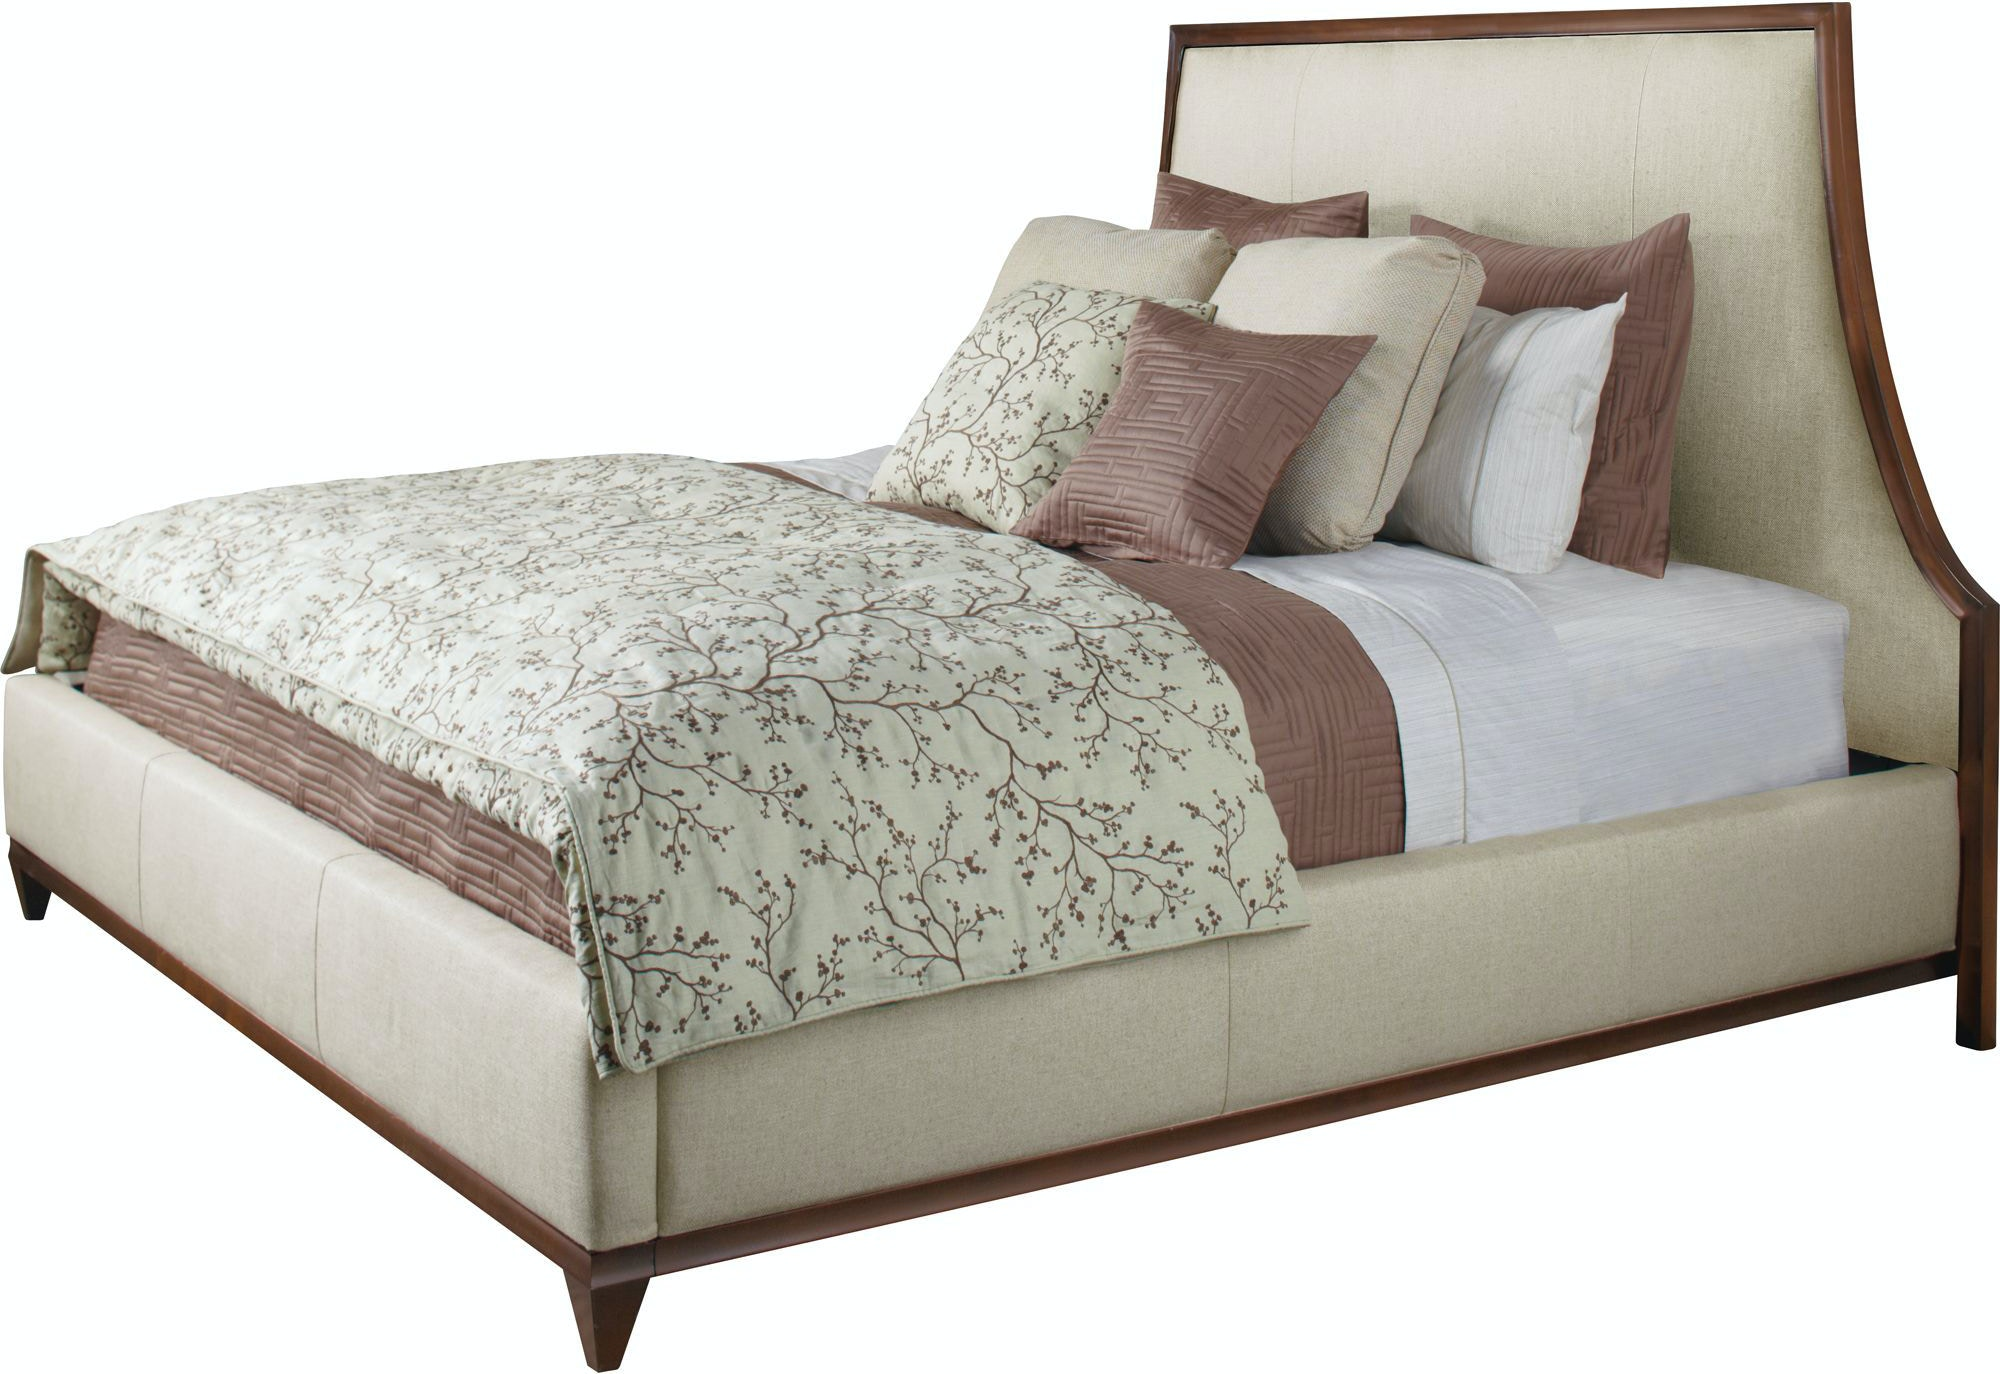 and online barry w bedding clover new find brand full bed x duvet free ship products leaf home garden cover storemeister queen barbara l at